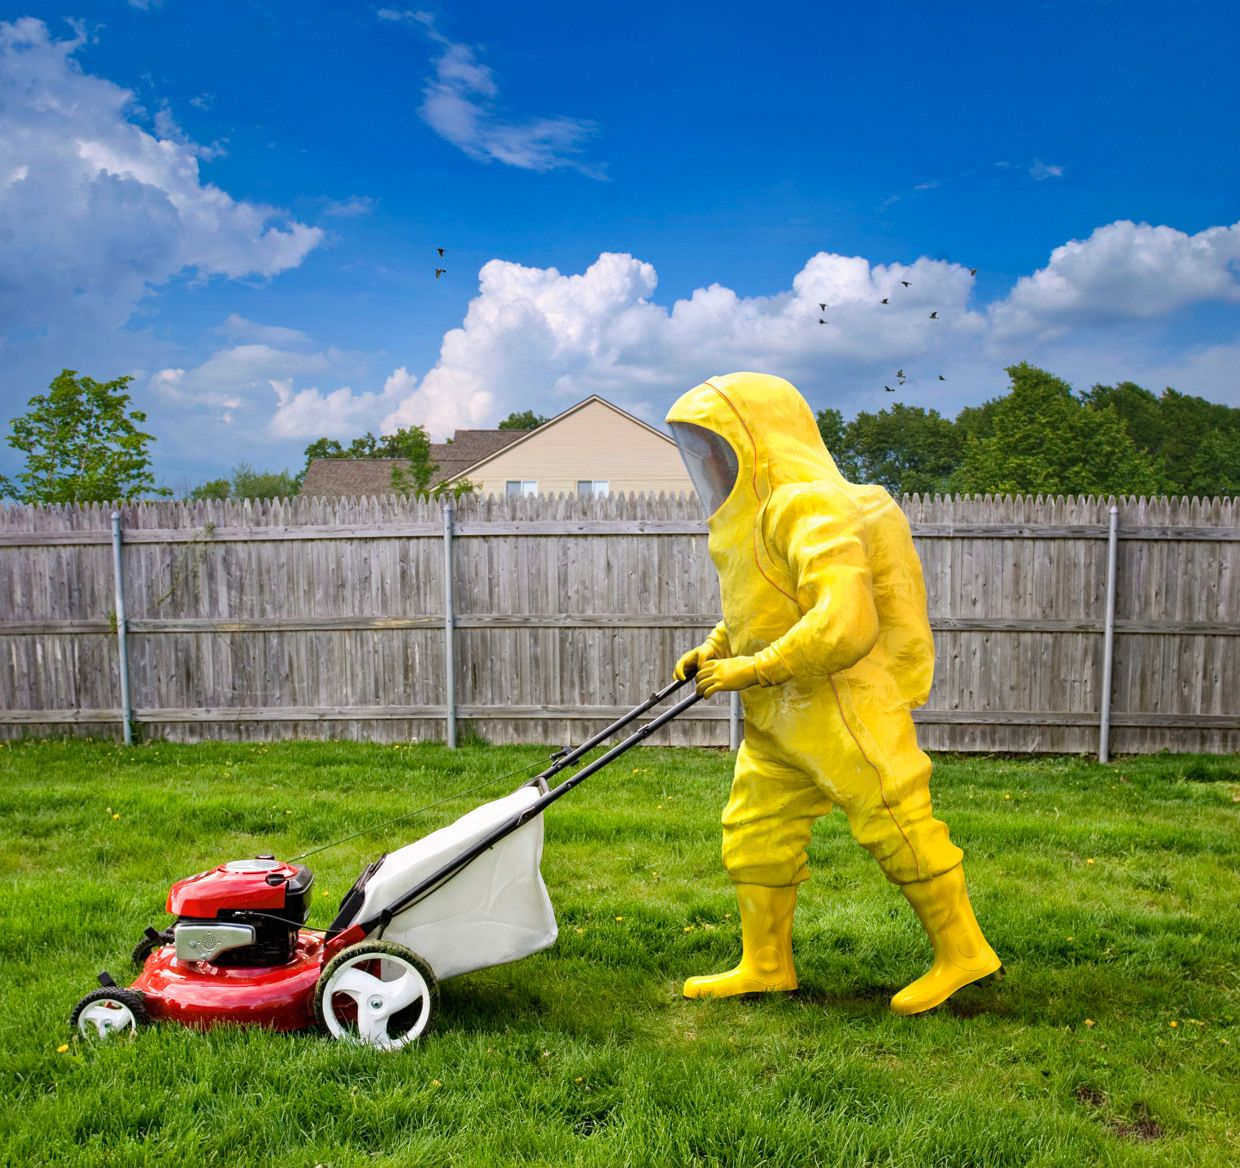 With All This Rain My Lawn Will Drown Before I Ever Have The Chance To Not Mow It Rain Humor Maxine Lawn Care Humor